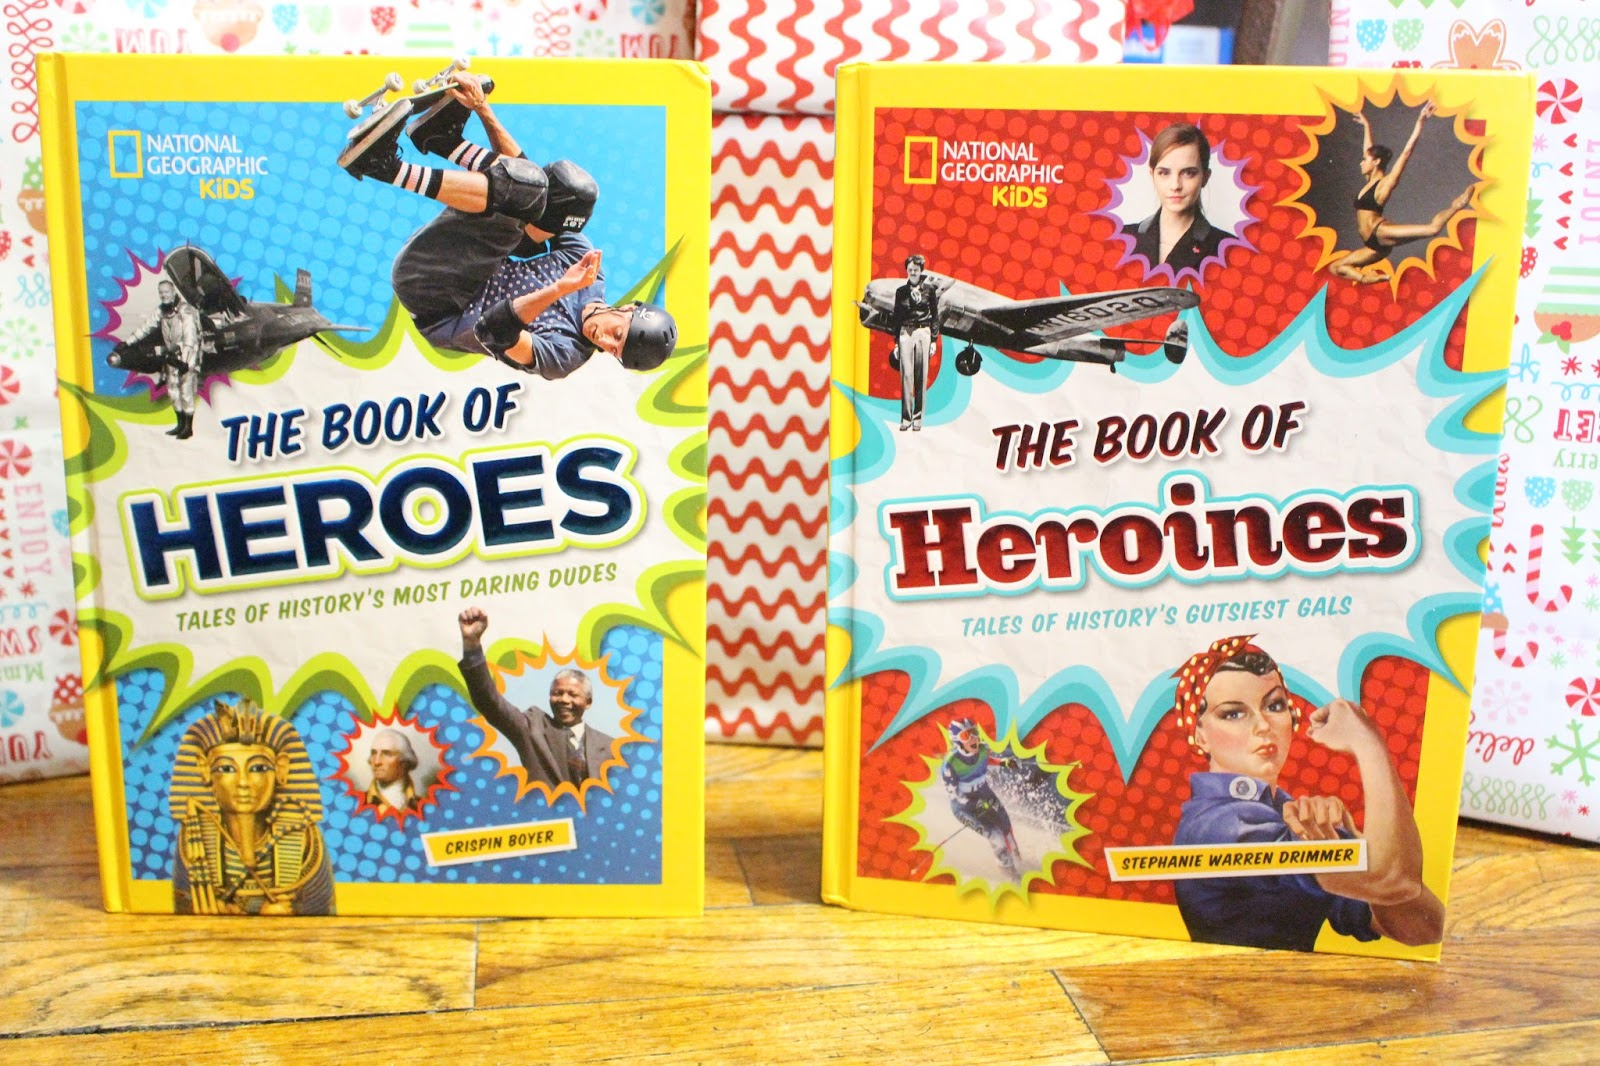 Day 7: National Geographic Kids Book of Heroes and Heroines